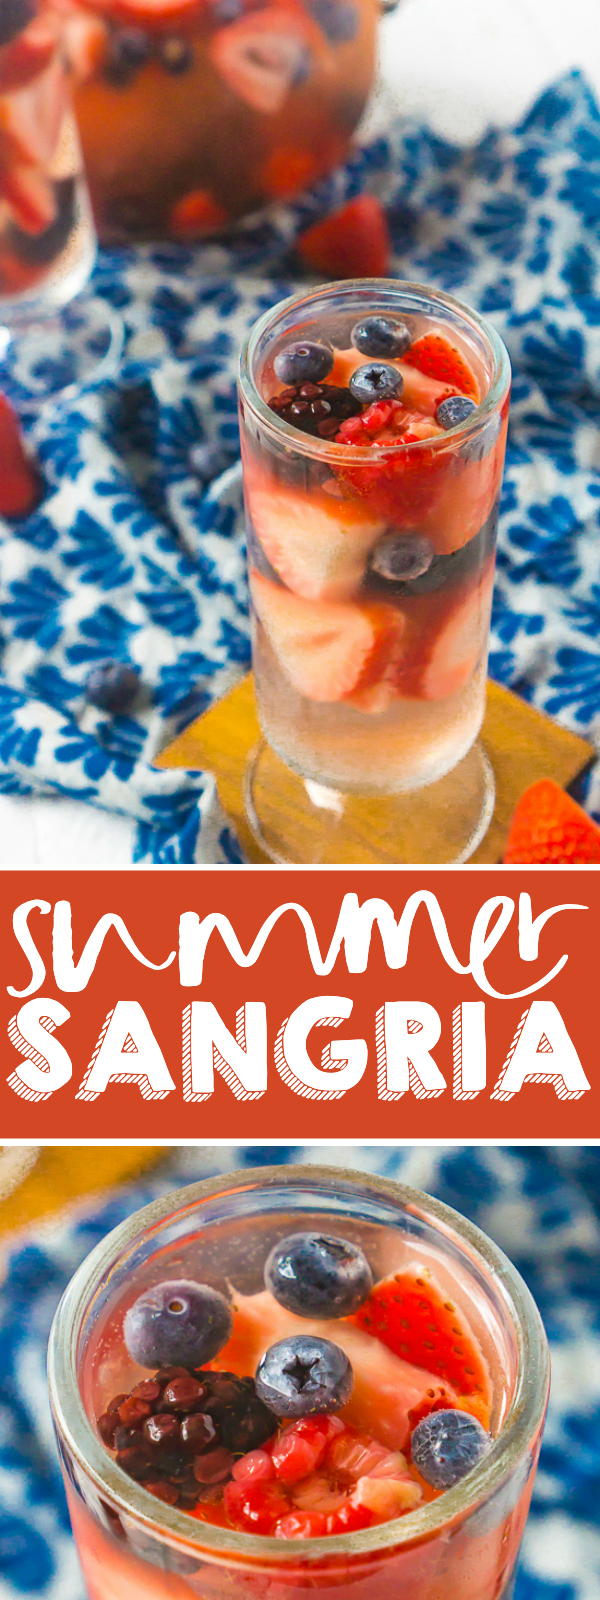 Filled with delicious summer berries, this is the BEST Summer Sangria Recipe! It's light, refreshing and so easy to make and customize all summer long. Plus, it doesn't need to sit over night making it great for summer parties!  | THE LOVE NERDS #SANGRIARECIPE #SUMMERCOCKTAIL #WINECOCKTAIL